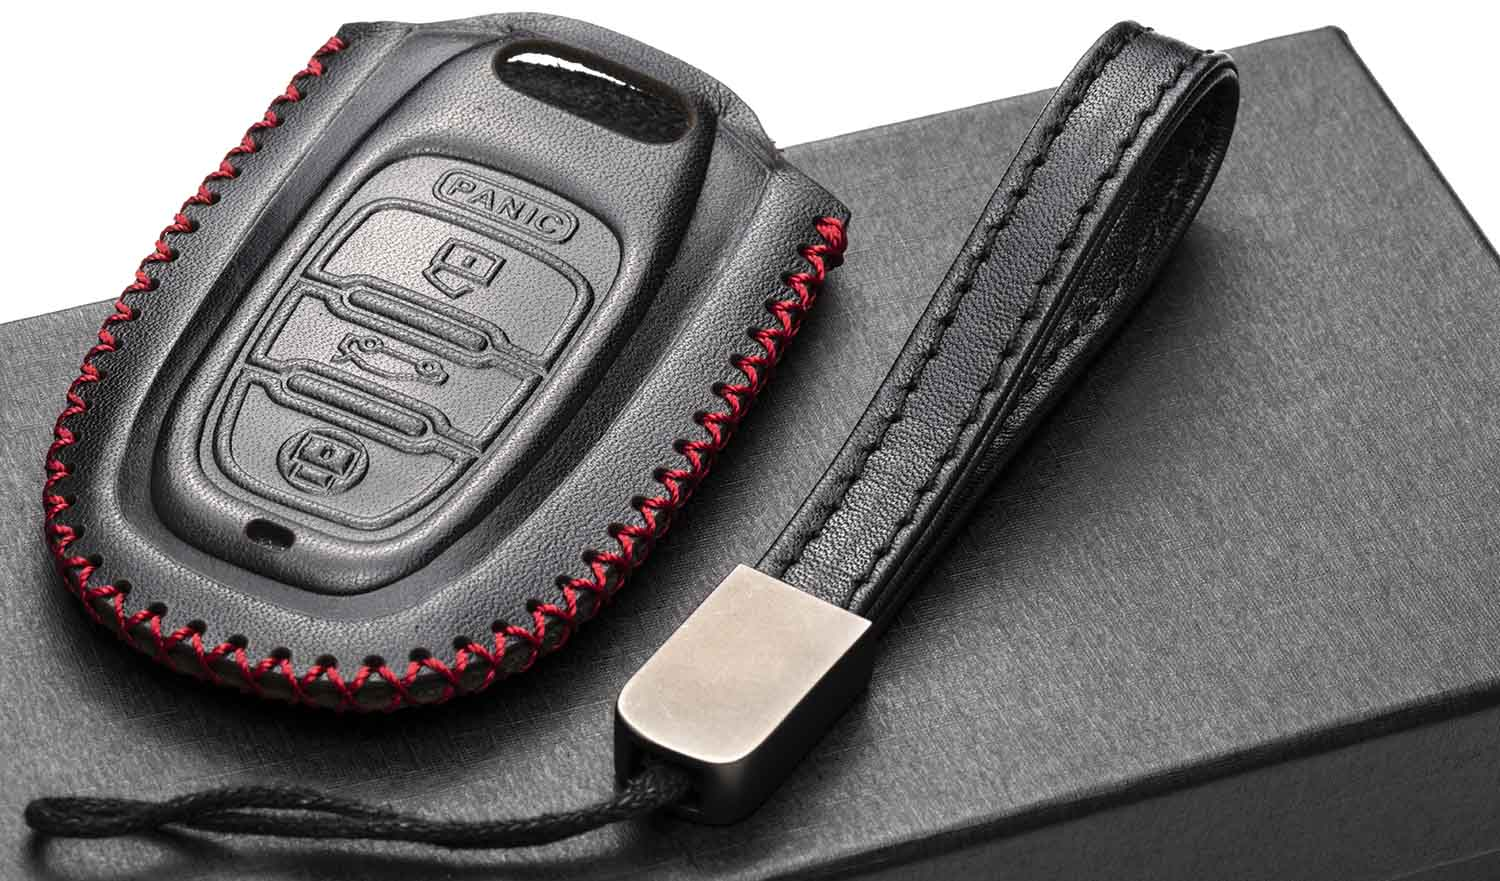 A6 A5 S5 RS 4 Buttons, Black S7 A7 A4 Vitodeco leather Keyless Entry Remote Control Smart Key Case Cover with a Key Chain for Audi A3 Q5